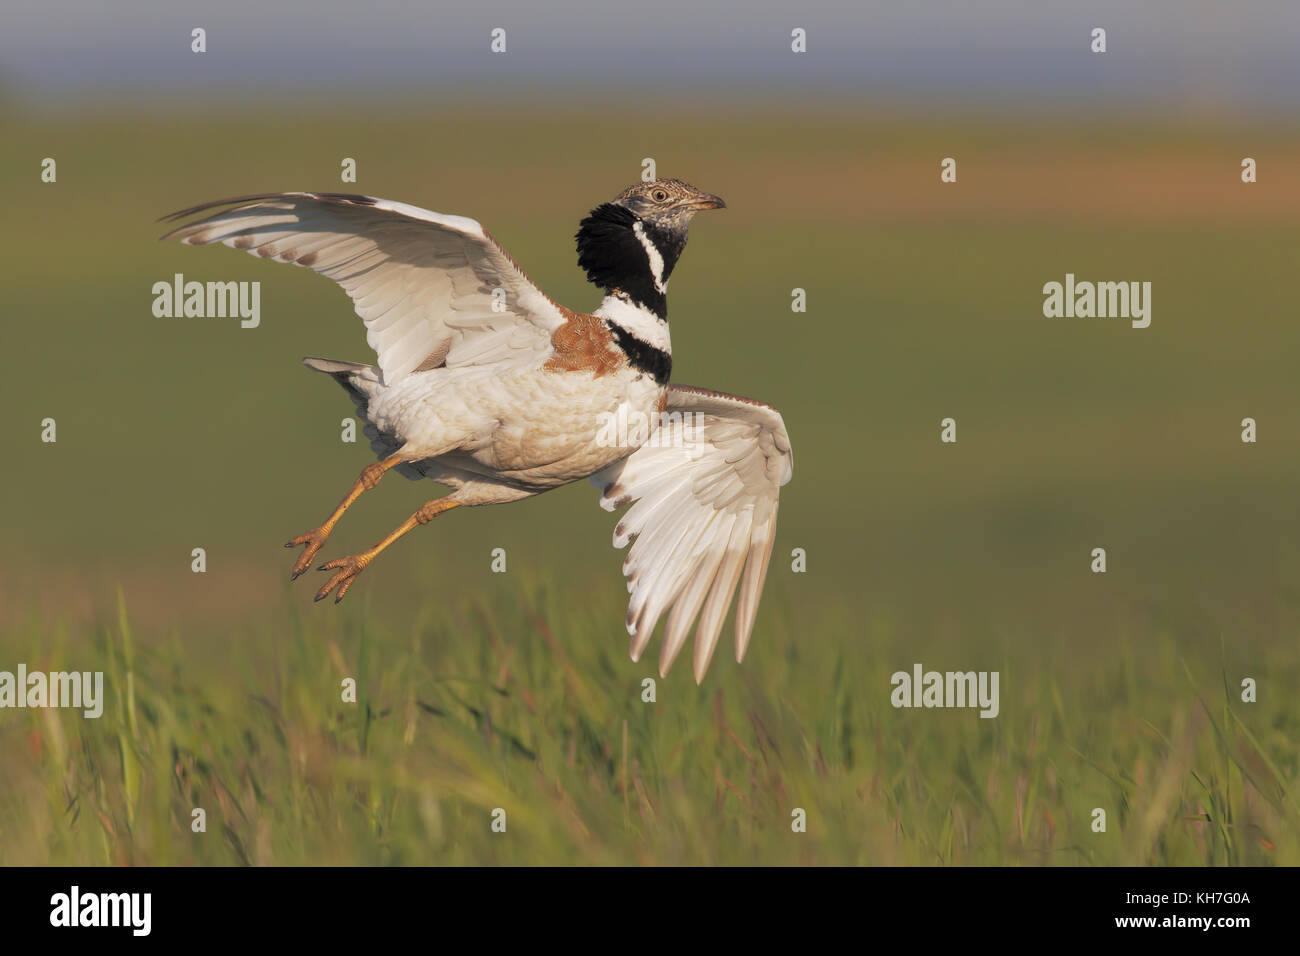 Little bustard jumping in the arena - Stock Image